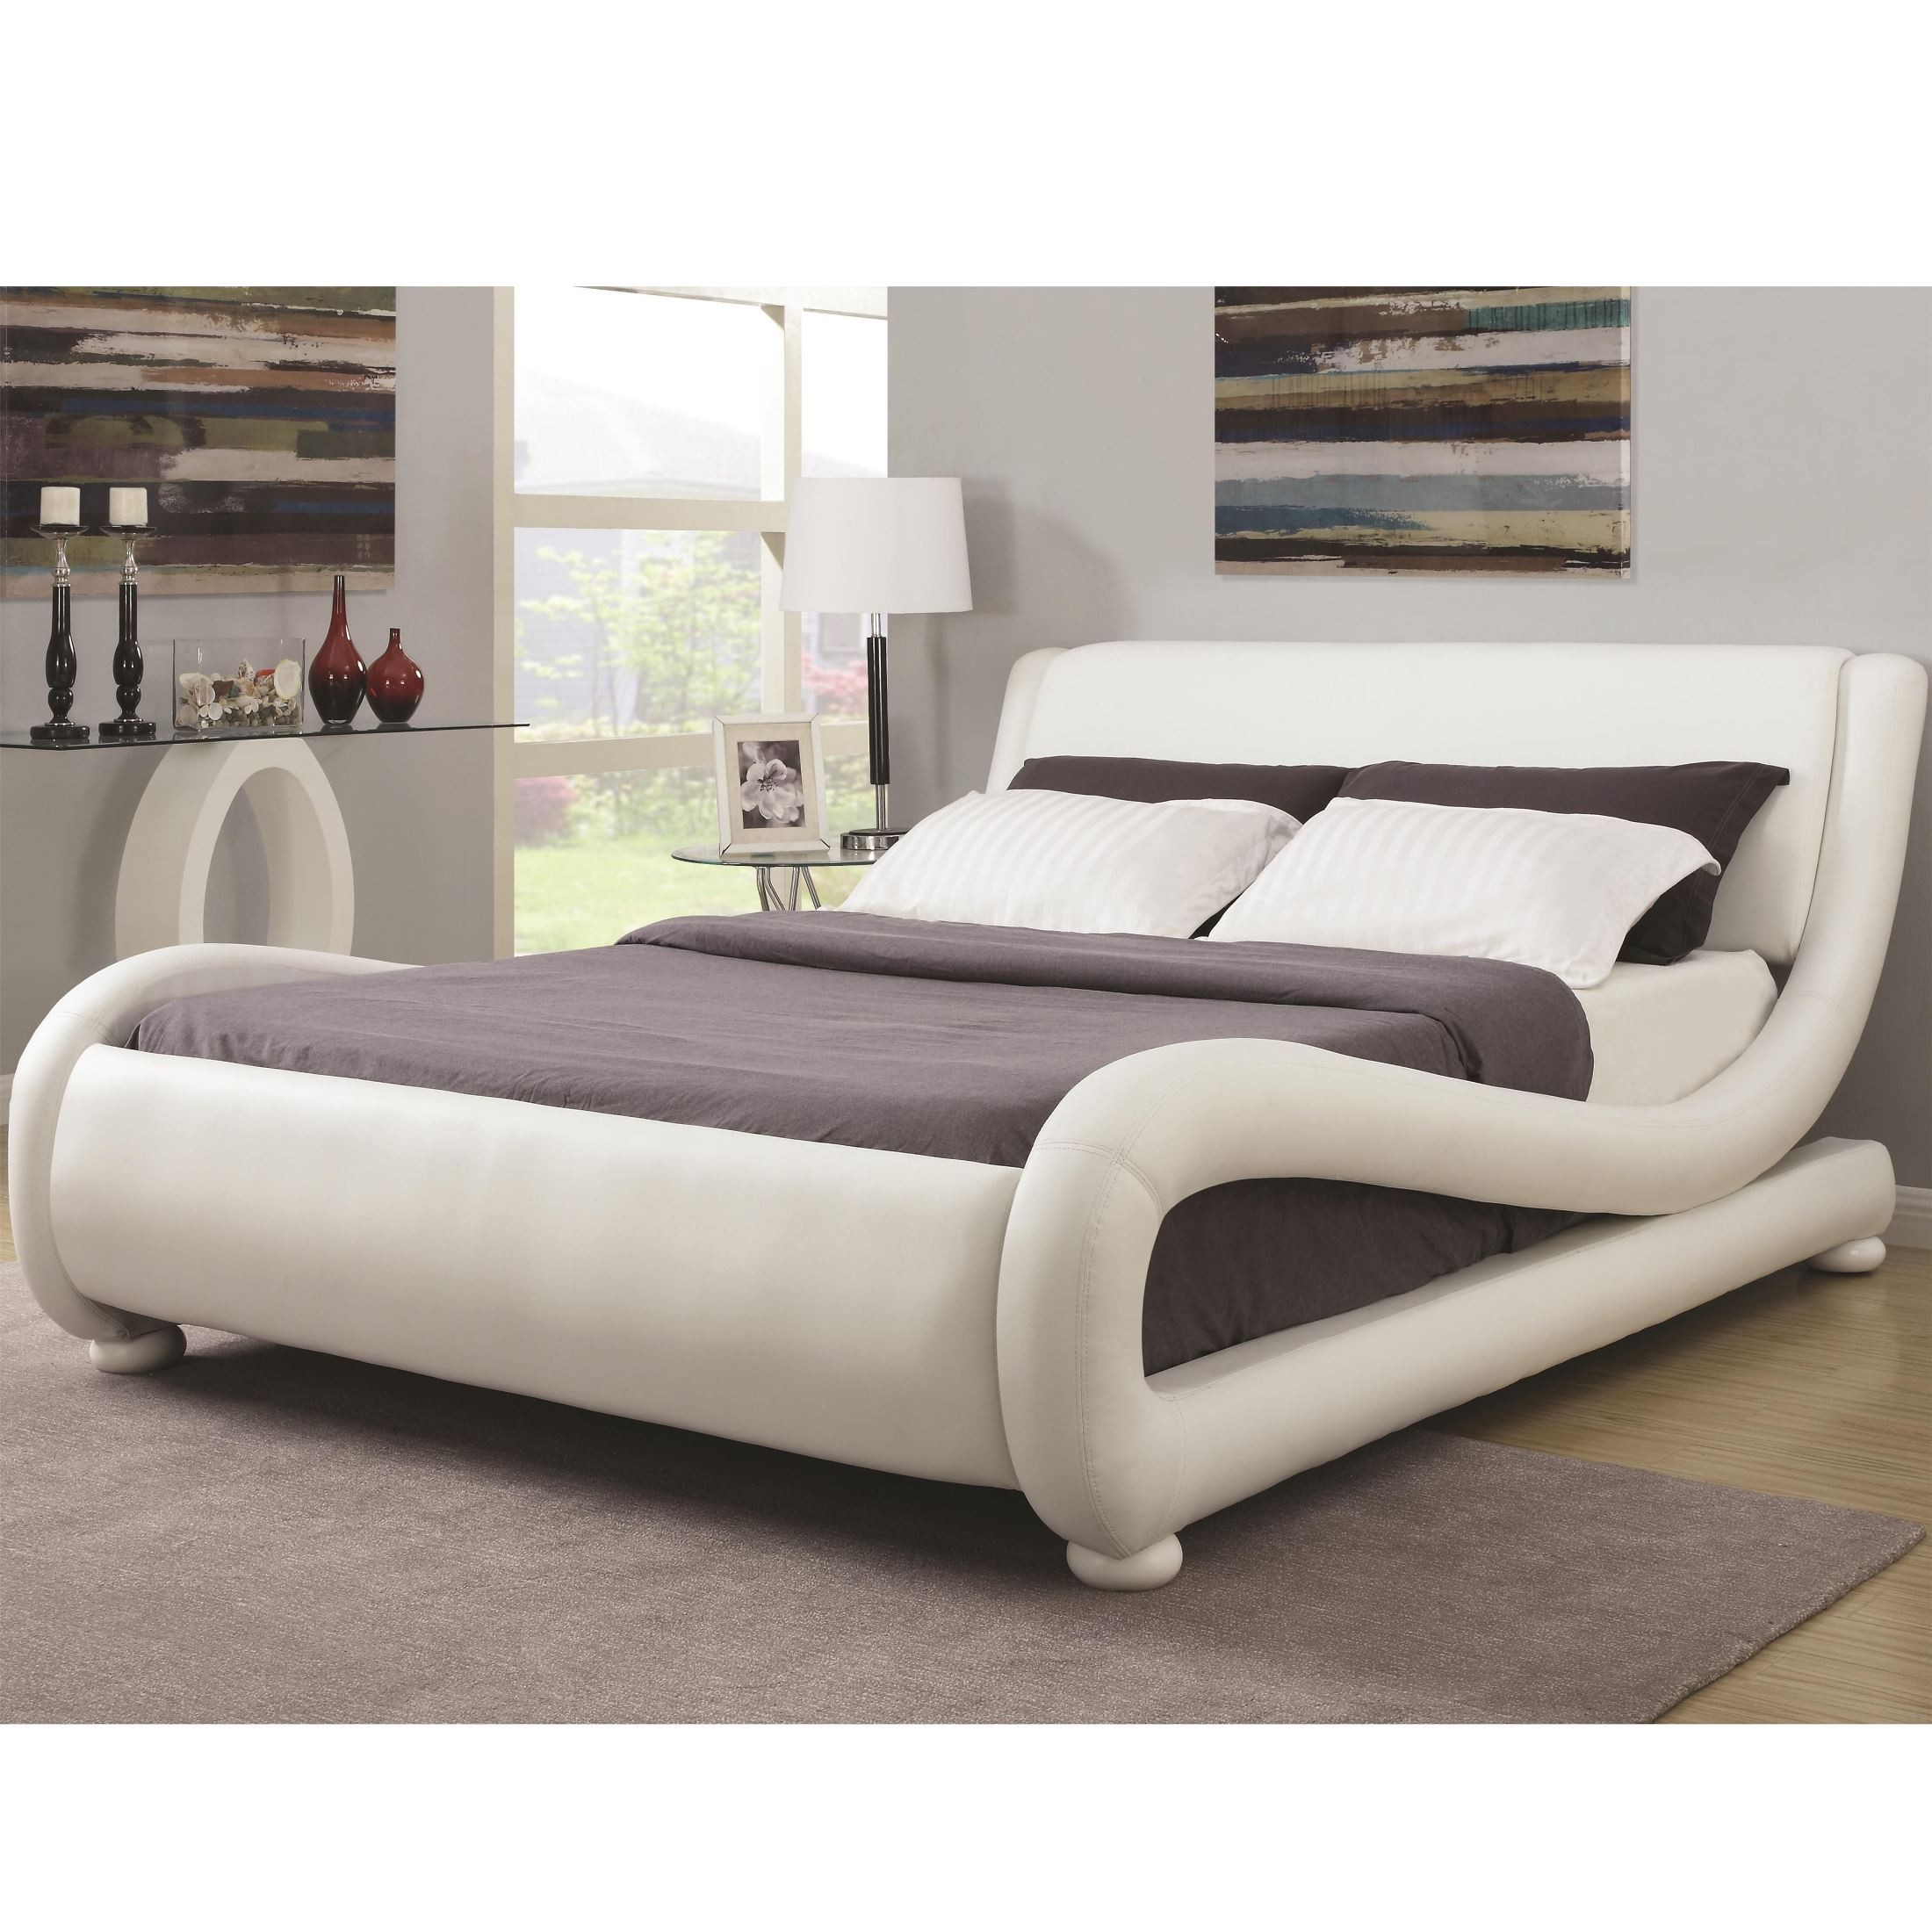 Kingsburg modern king upholstered platform bed from Modern platform beds